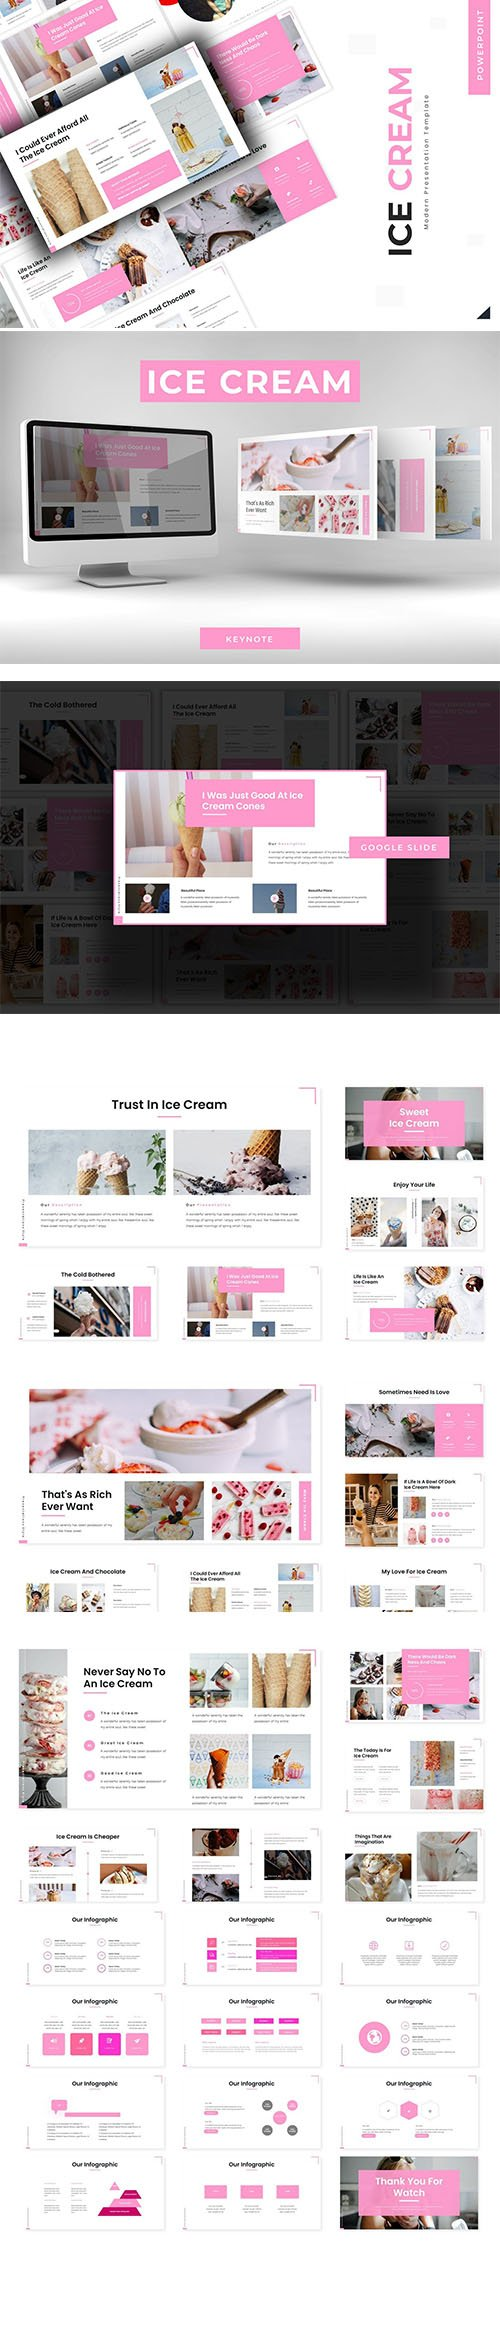 Sweet Ice Cream - Powerpoint, Keynote Template and Google Slide Template